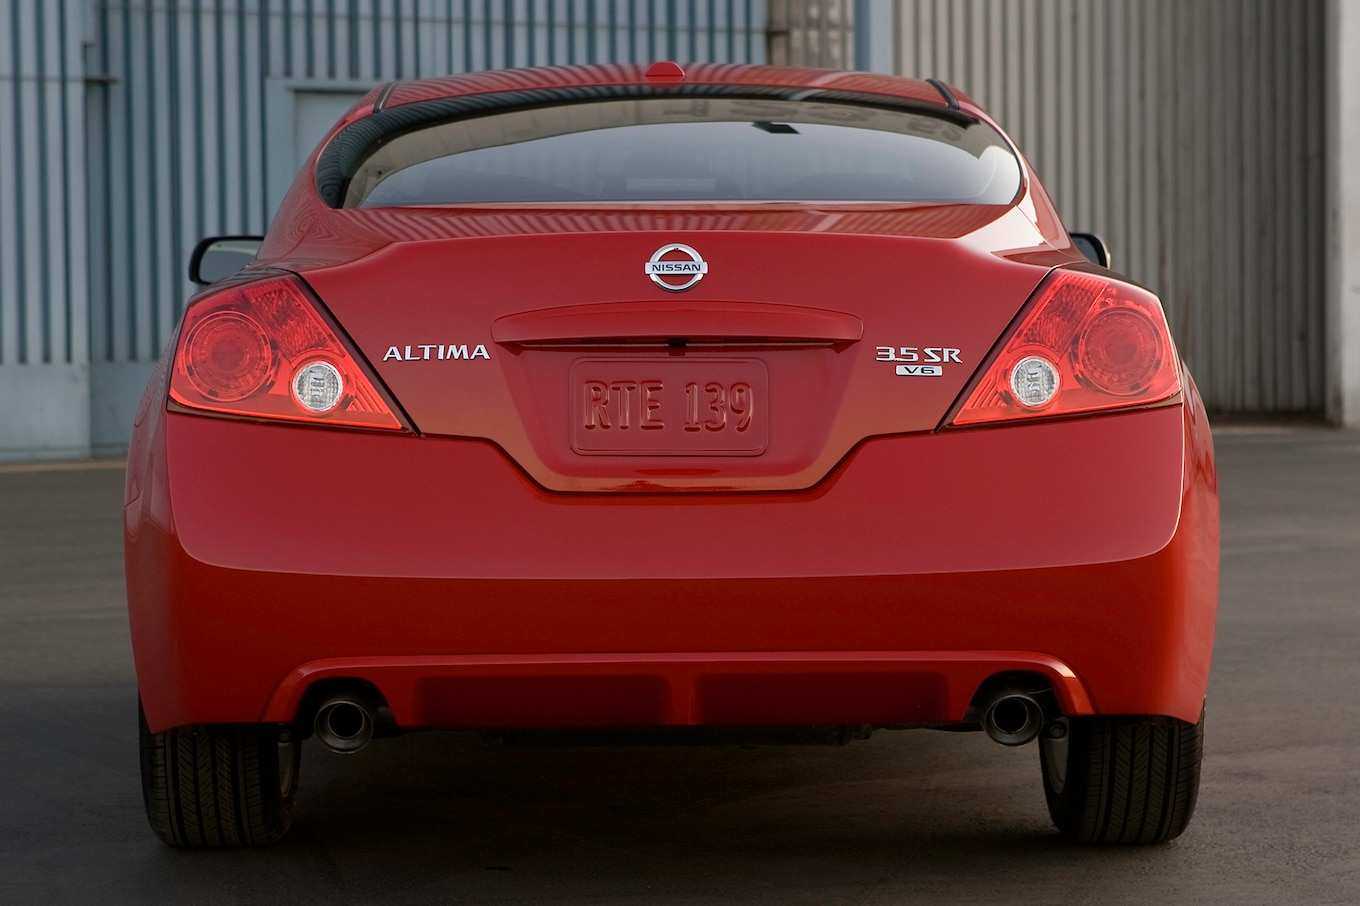 24 All New 2013 Nissan Altima Coupe Images